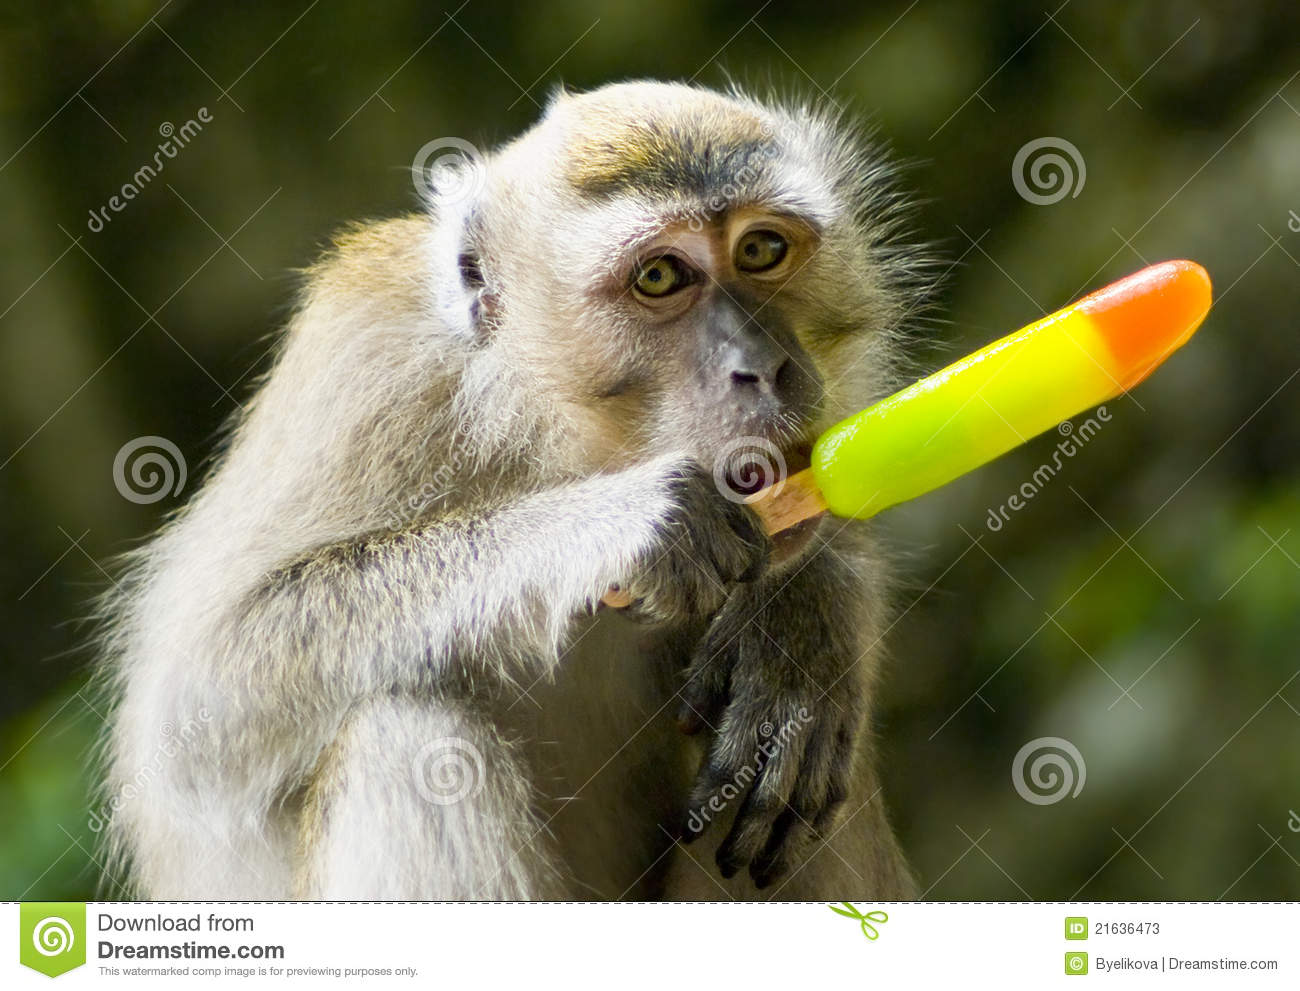 Monkey Eating Ice Cream Stock Photos - Image: 21636473